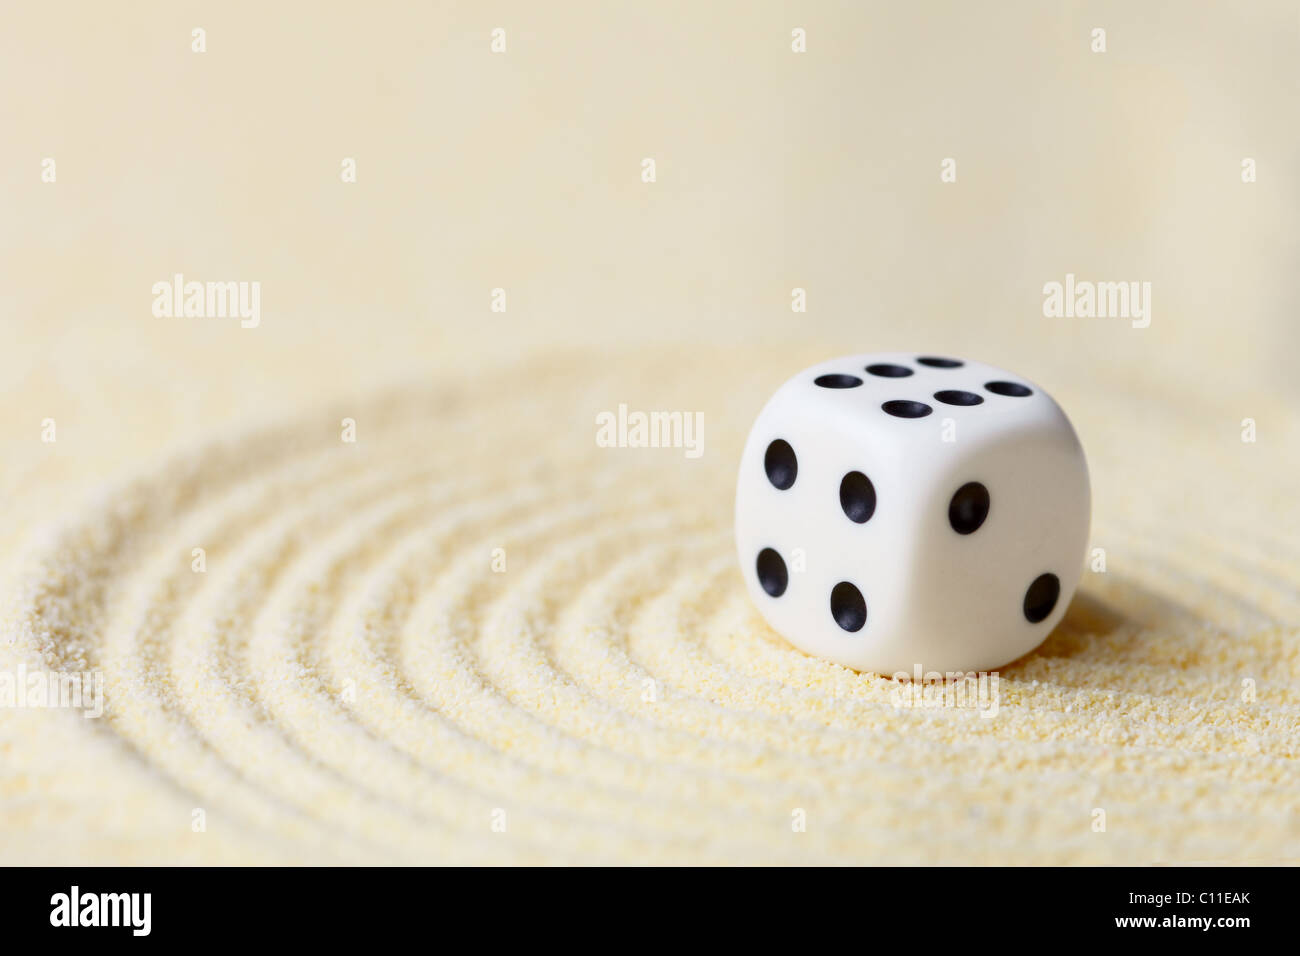 Art composition from playing dice on sand - Stock Image